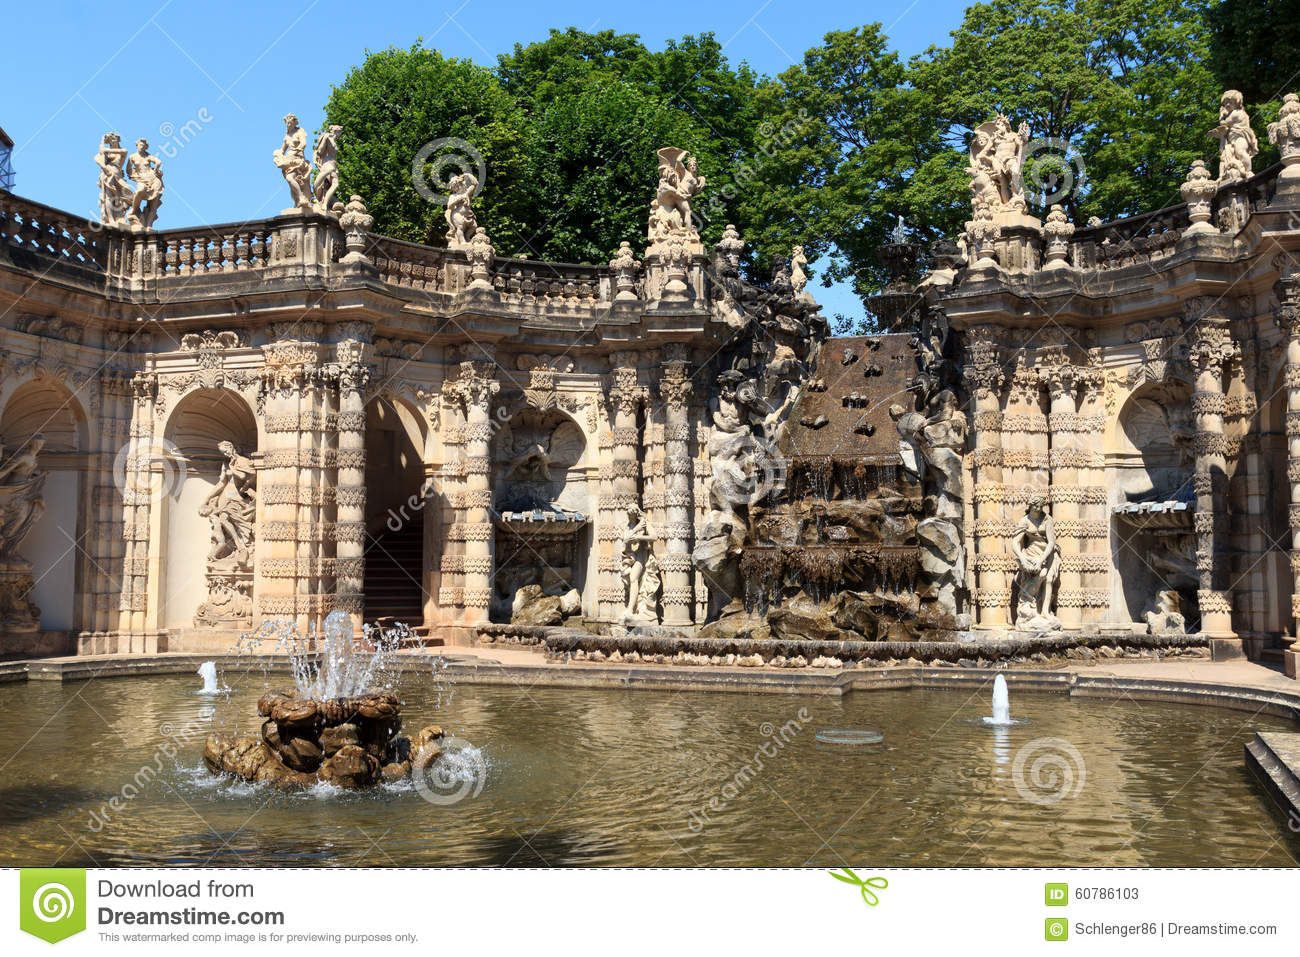 Water Garden Nymphenbad In Palace Zwinger, Dresden Stock Photo.